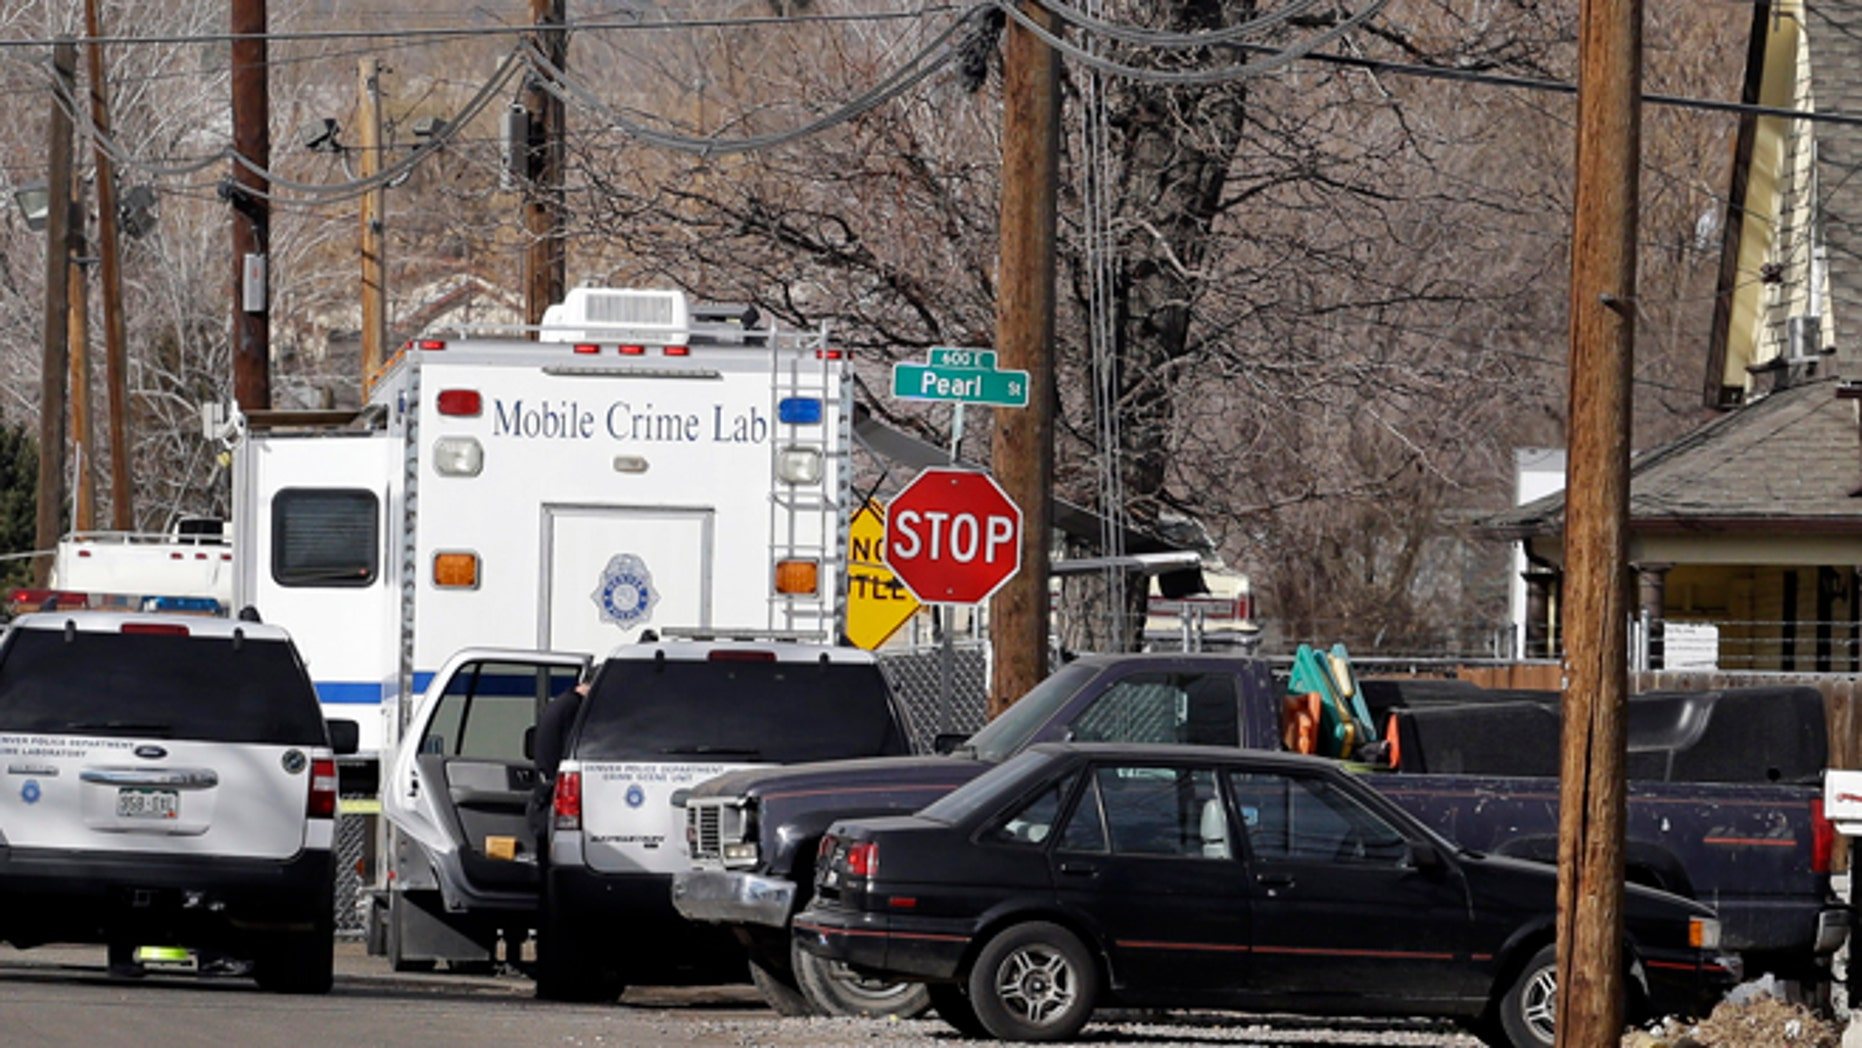 Feb. 6, 2013: Police investigate the scene of a shooting where a woman and two children were found dead and a third child wounded in the Globeville neighborhood in Denver.